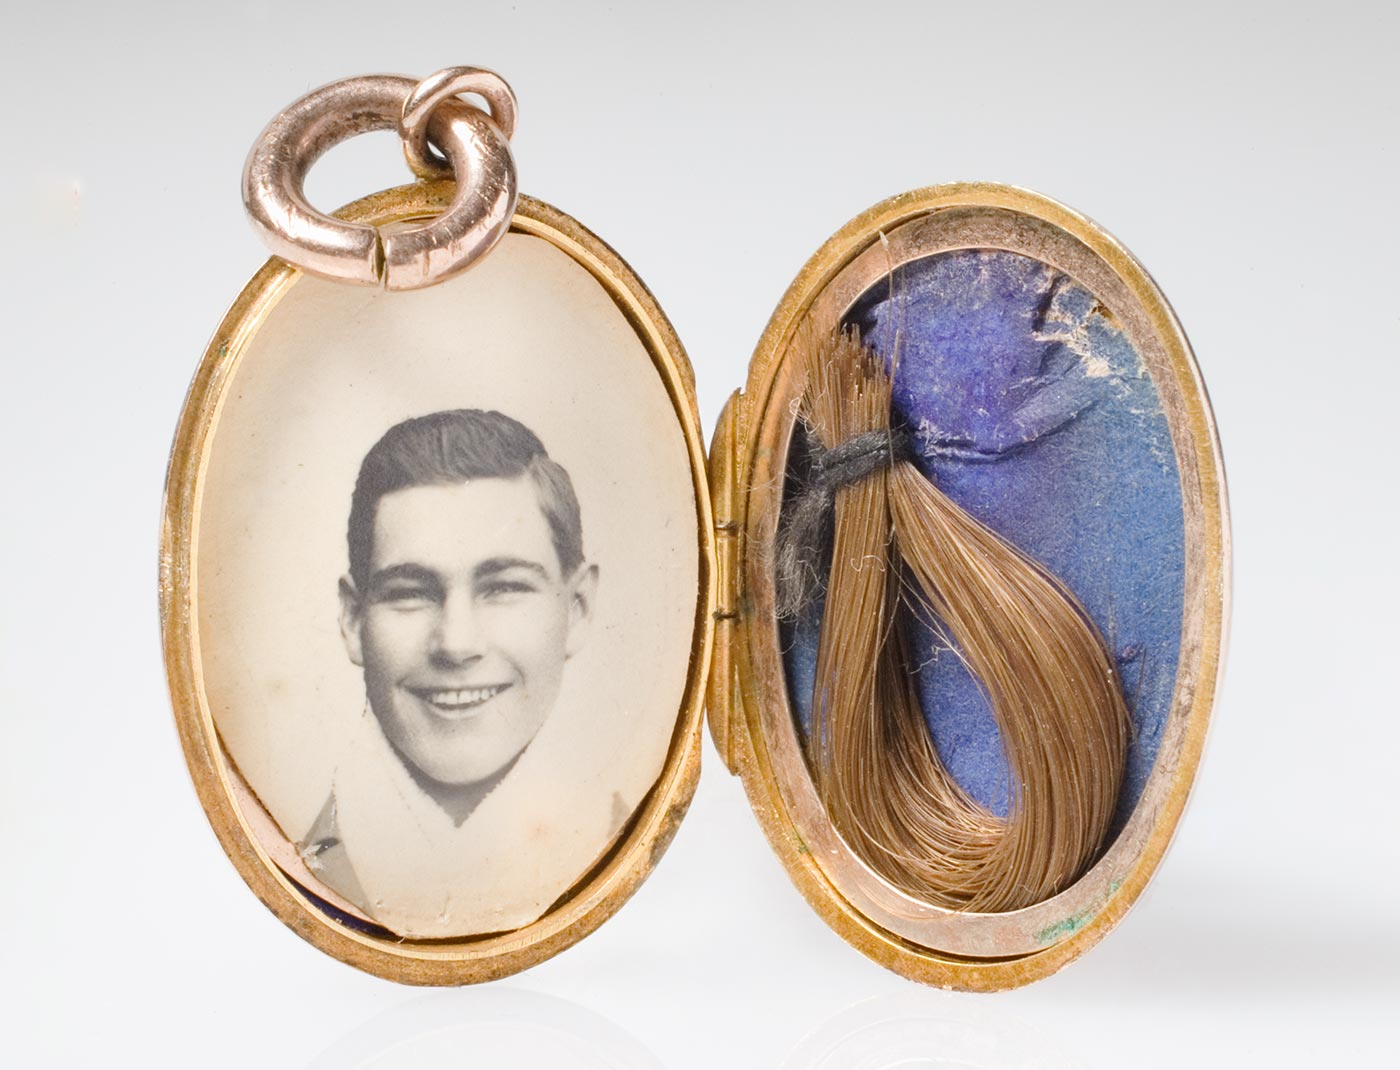 A locket containing a black and white photo of a smiling young man on one side and a lock of hair on the other.